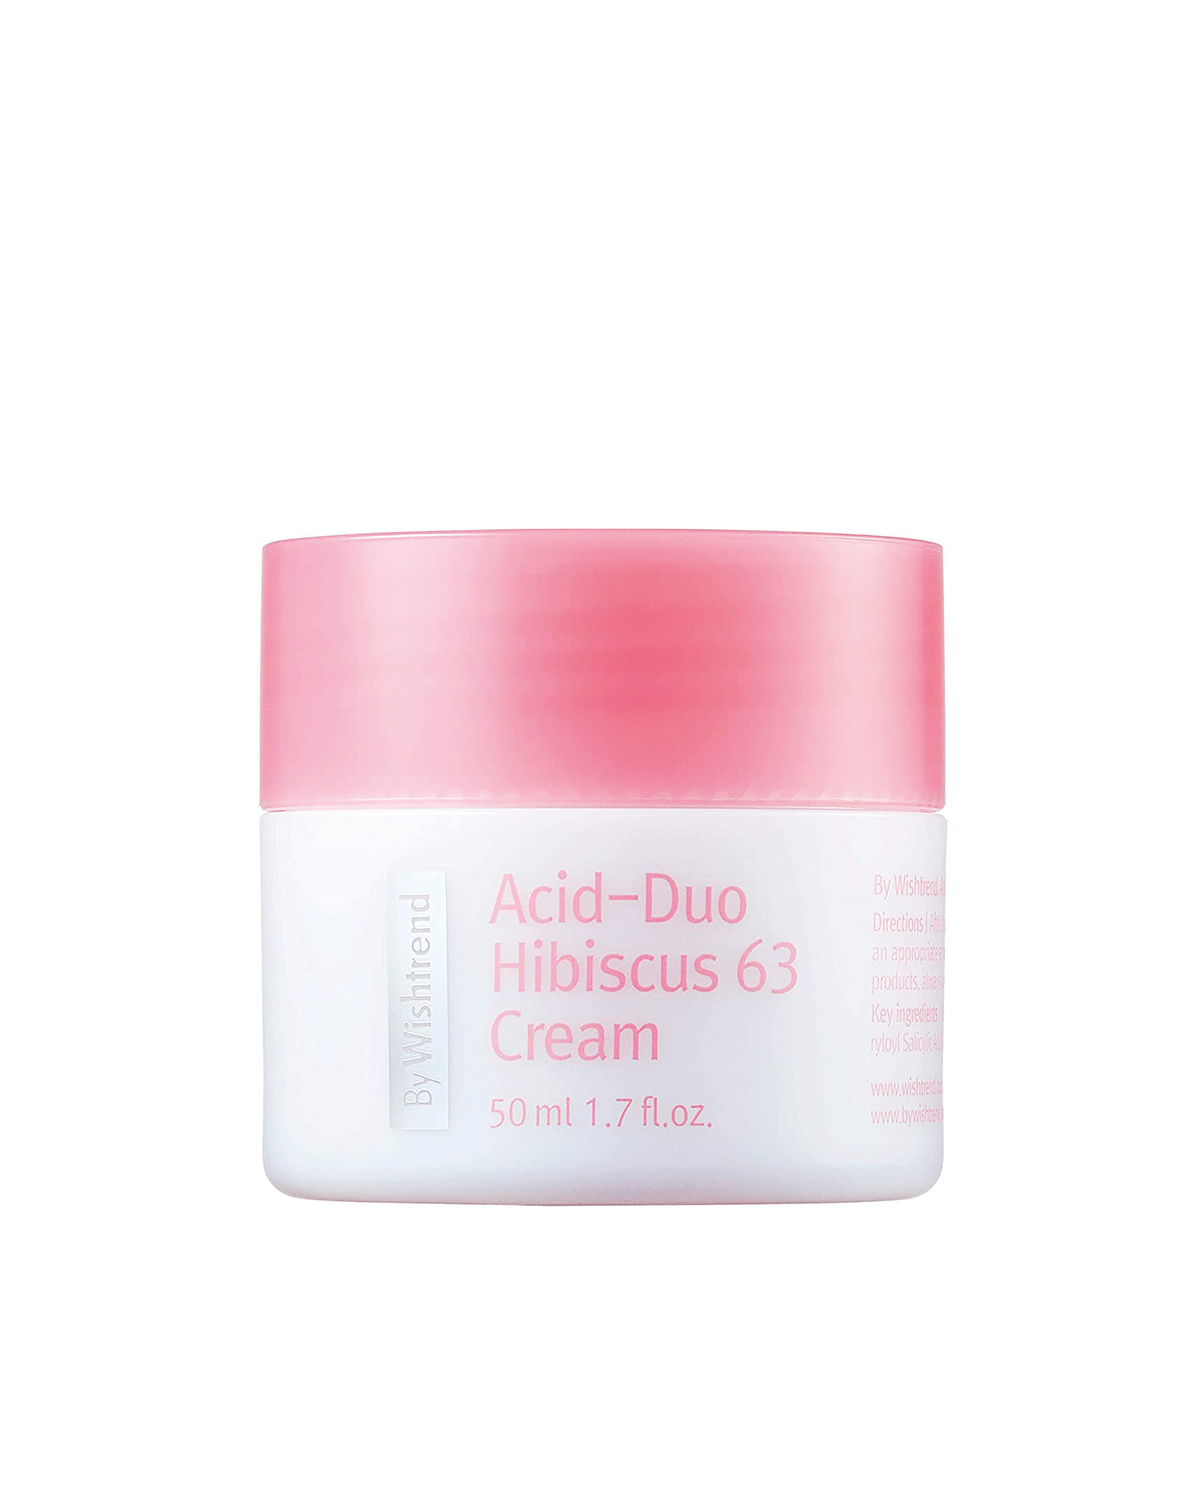 BY WISHTREND Acid-Duo Hibiscus 63 Cream 50 ml